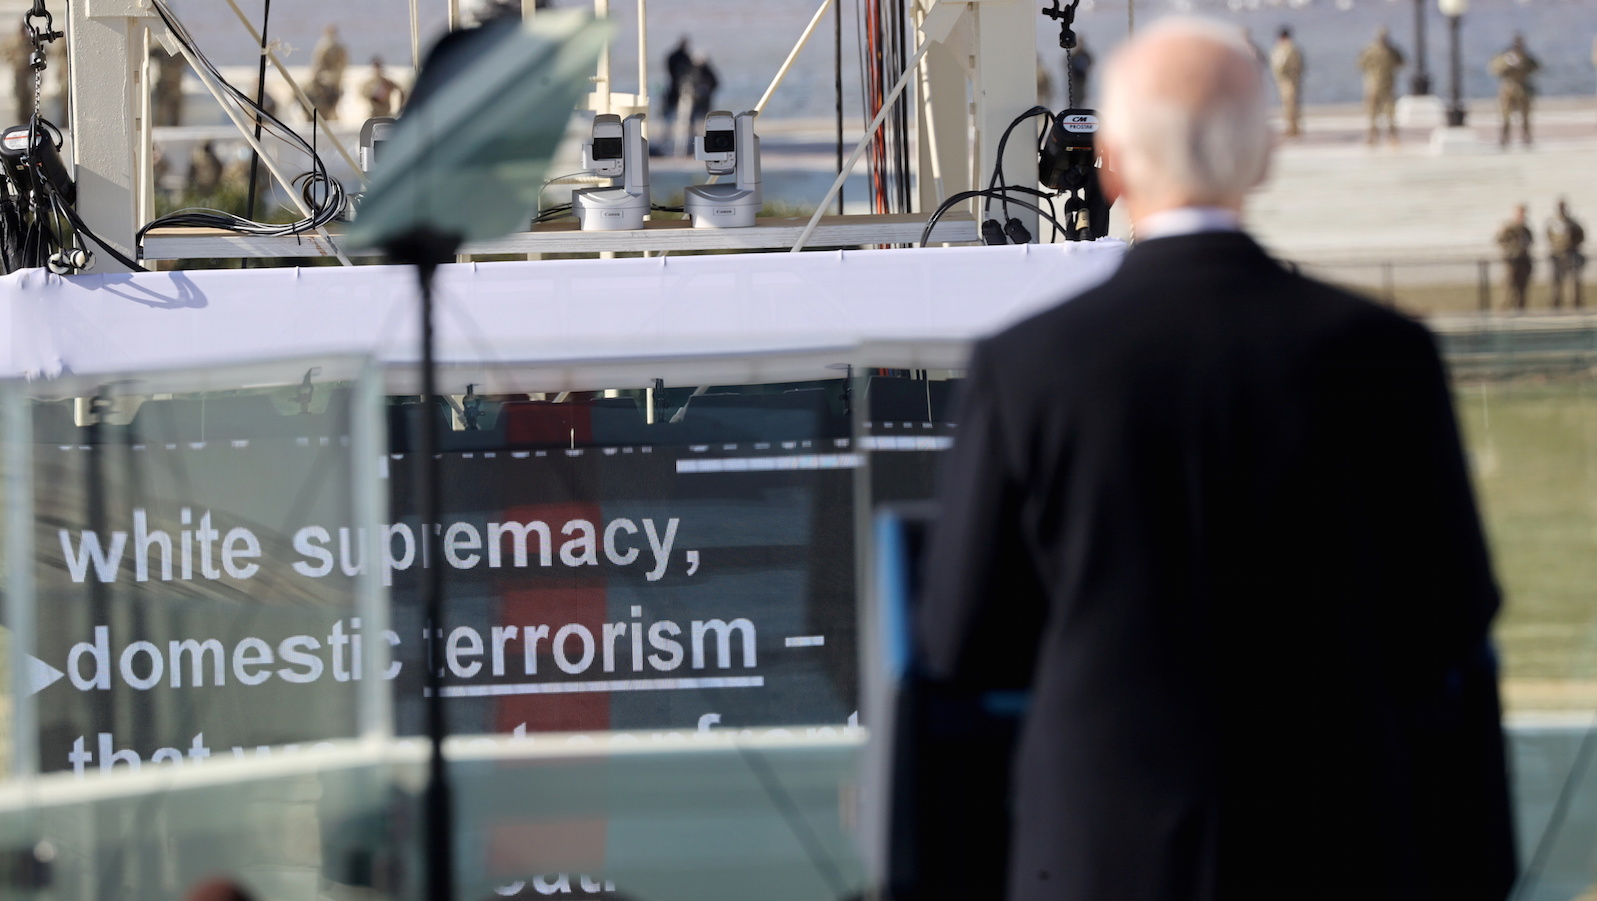 """Biden faces a monitor with the word """"white supremacy"""" during his inaugural speech"""